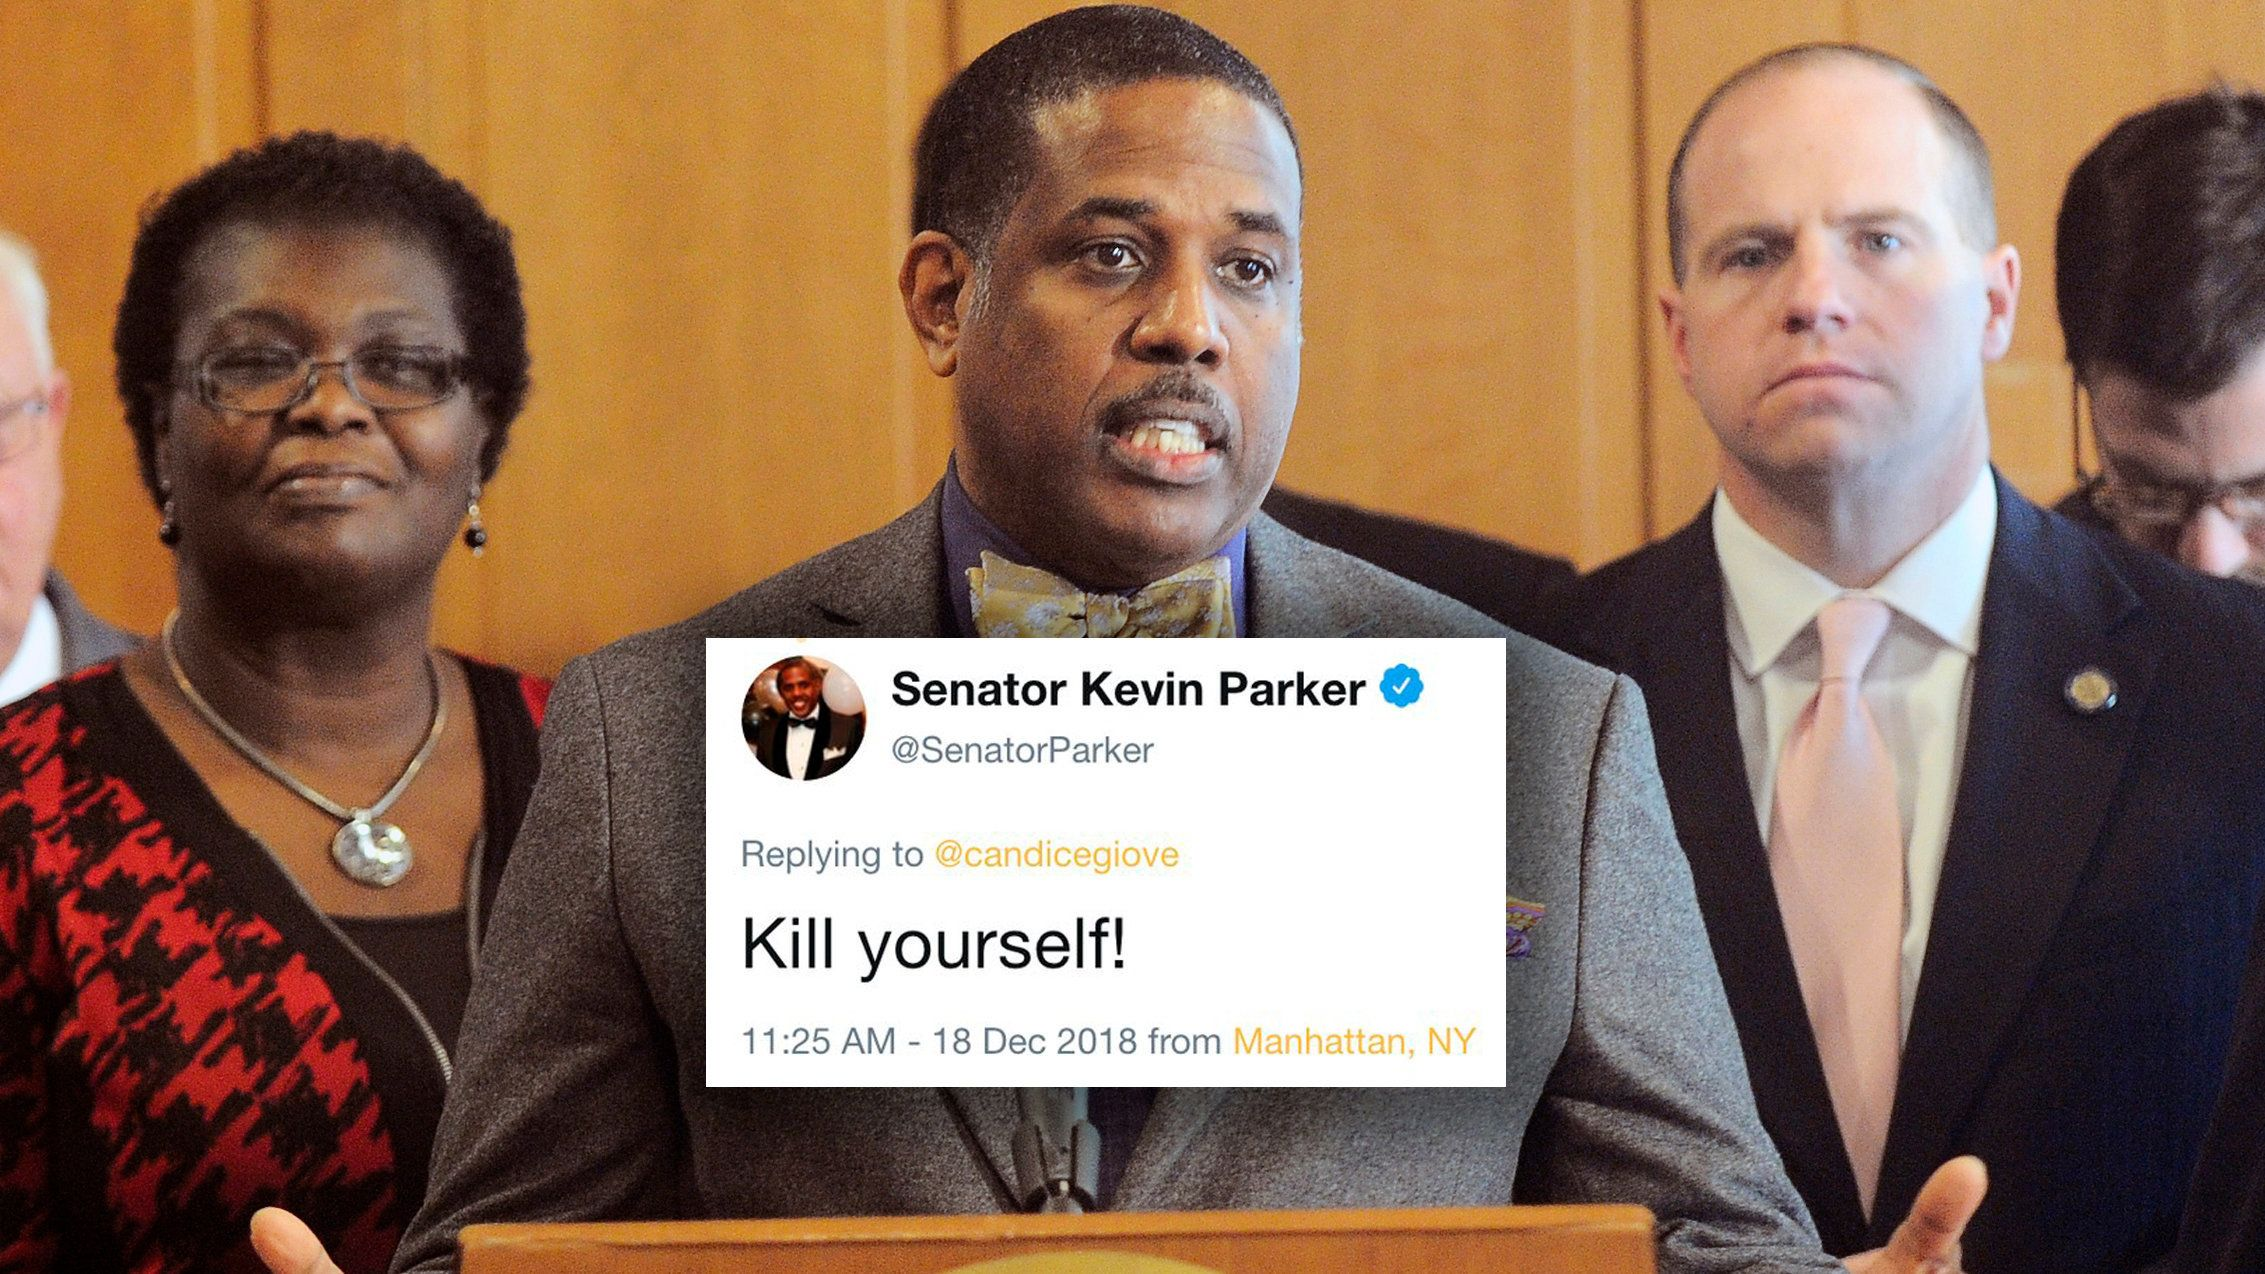 NY State Senator Tweets 'Kill Yourself' To GOP Staffer Who Called Him Out